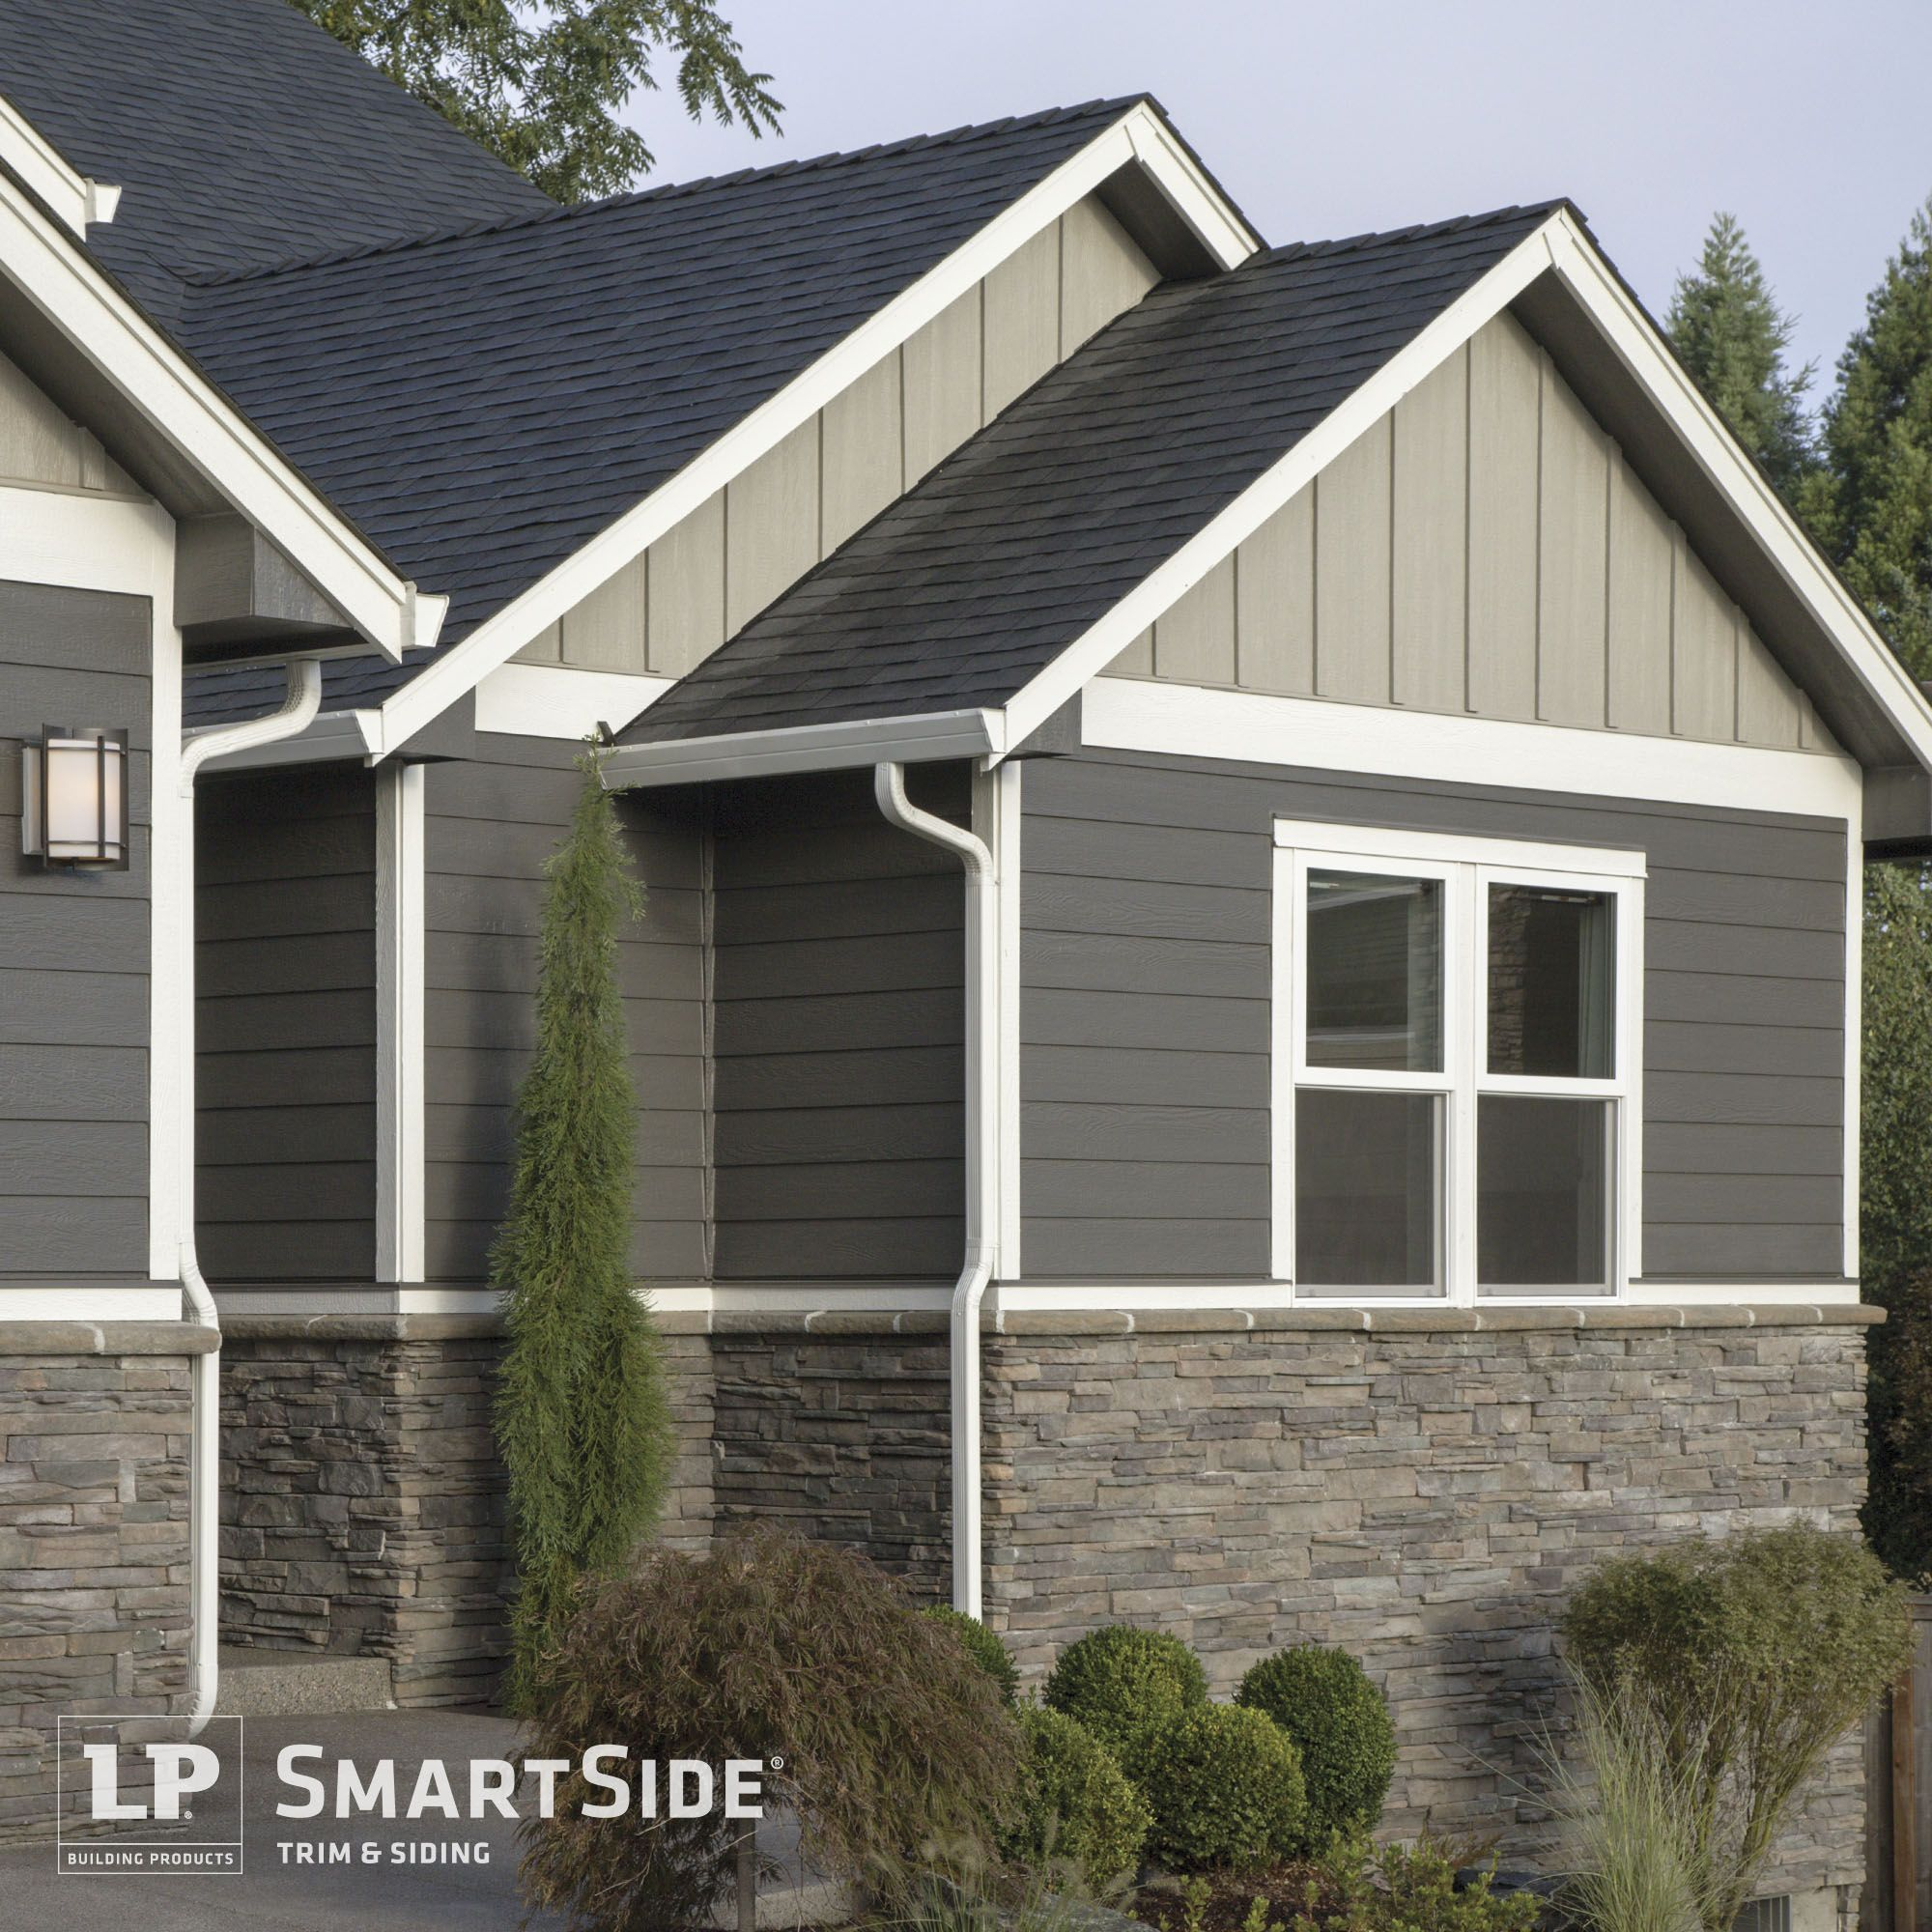 Exterior Stone Work lp smartside trim, lap and panel siding pair with horizontal